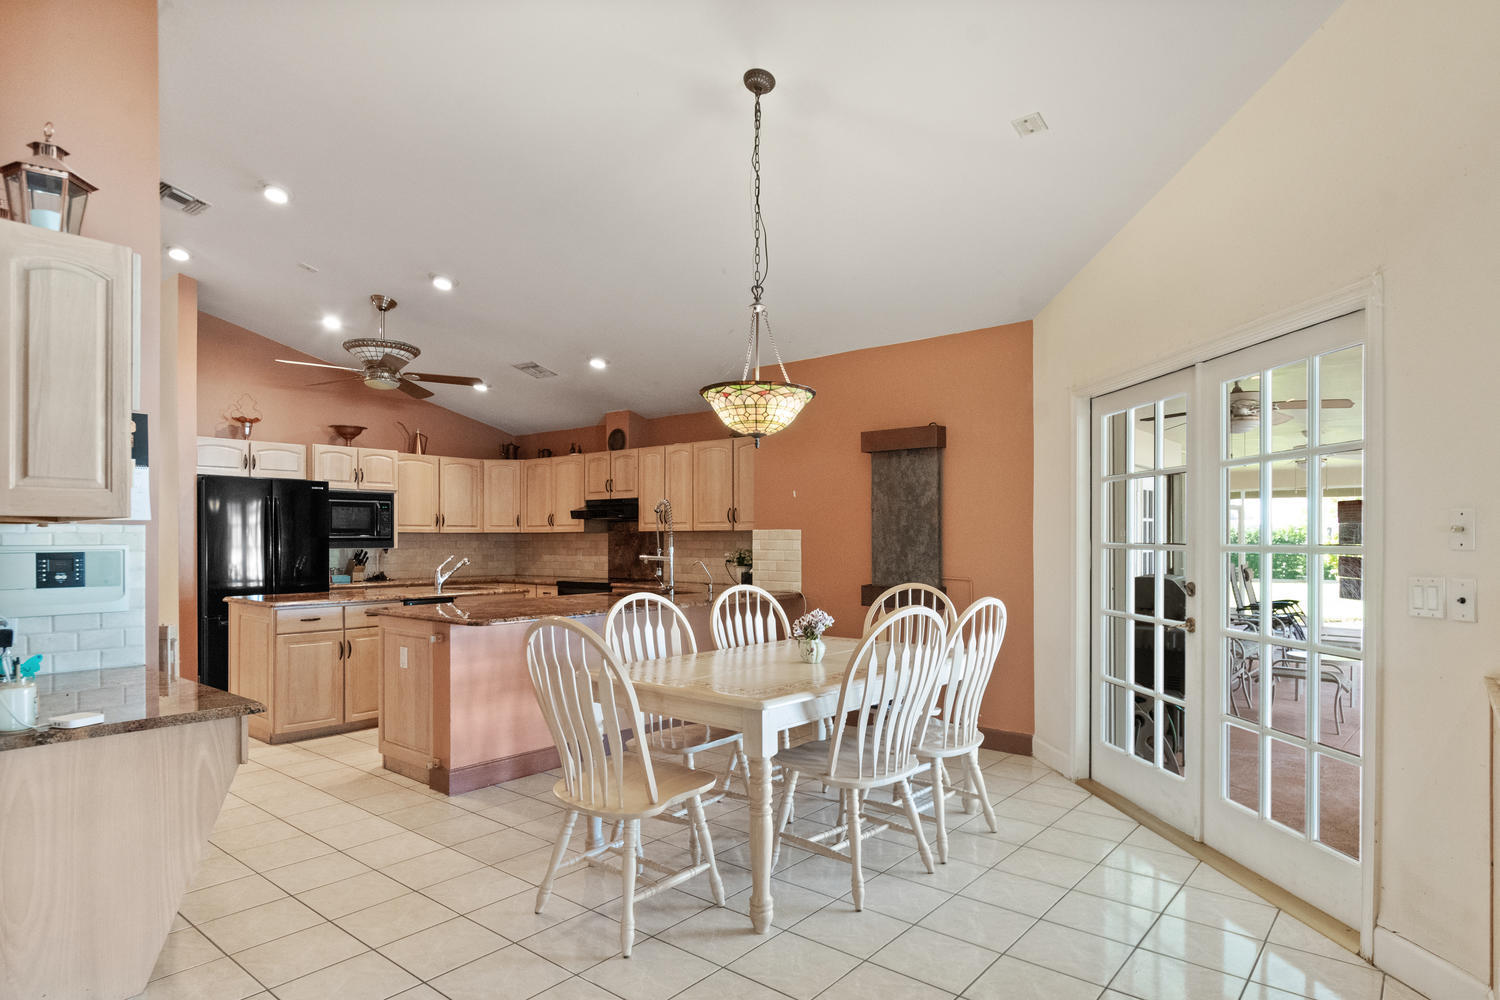 14794 Rolling Rock Place, Wellington, Florida 33414, 5 Bedrooms Bedrooms, ,4 BathroomsBathrooms,Single Family,For Sale,Saddle Trail Park,Rolling Rock,1,RX-10628972